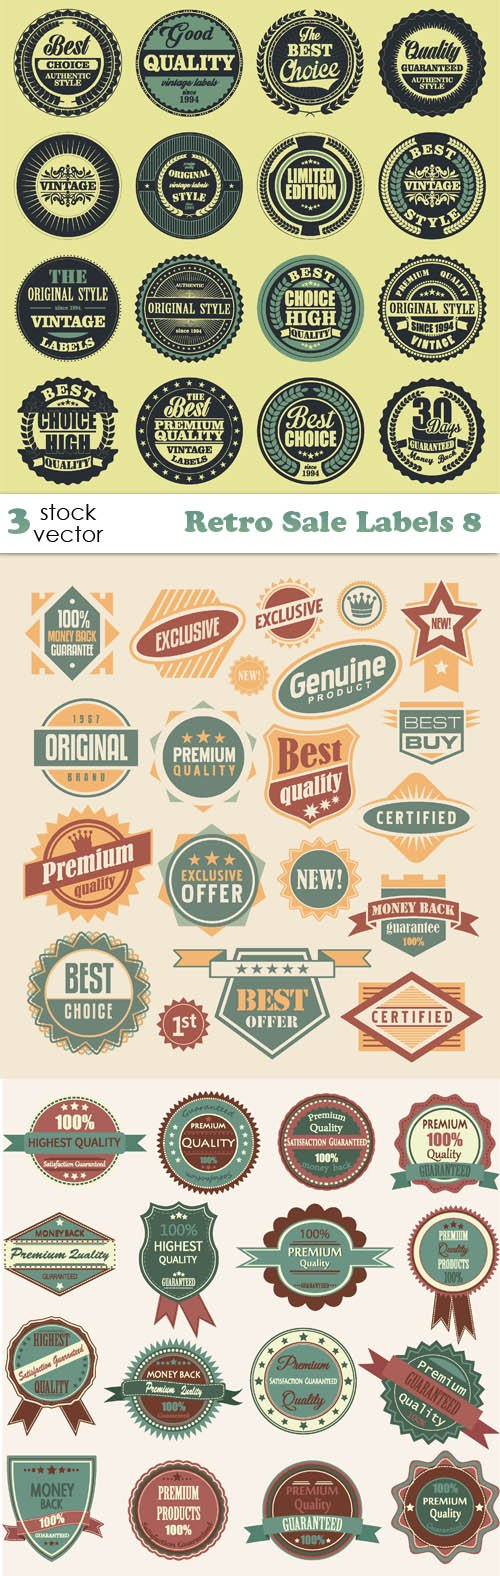 Vectors - Retro Sale Labels 8